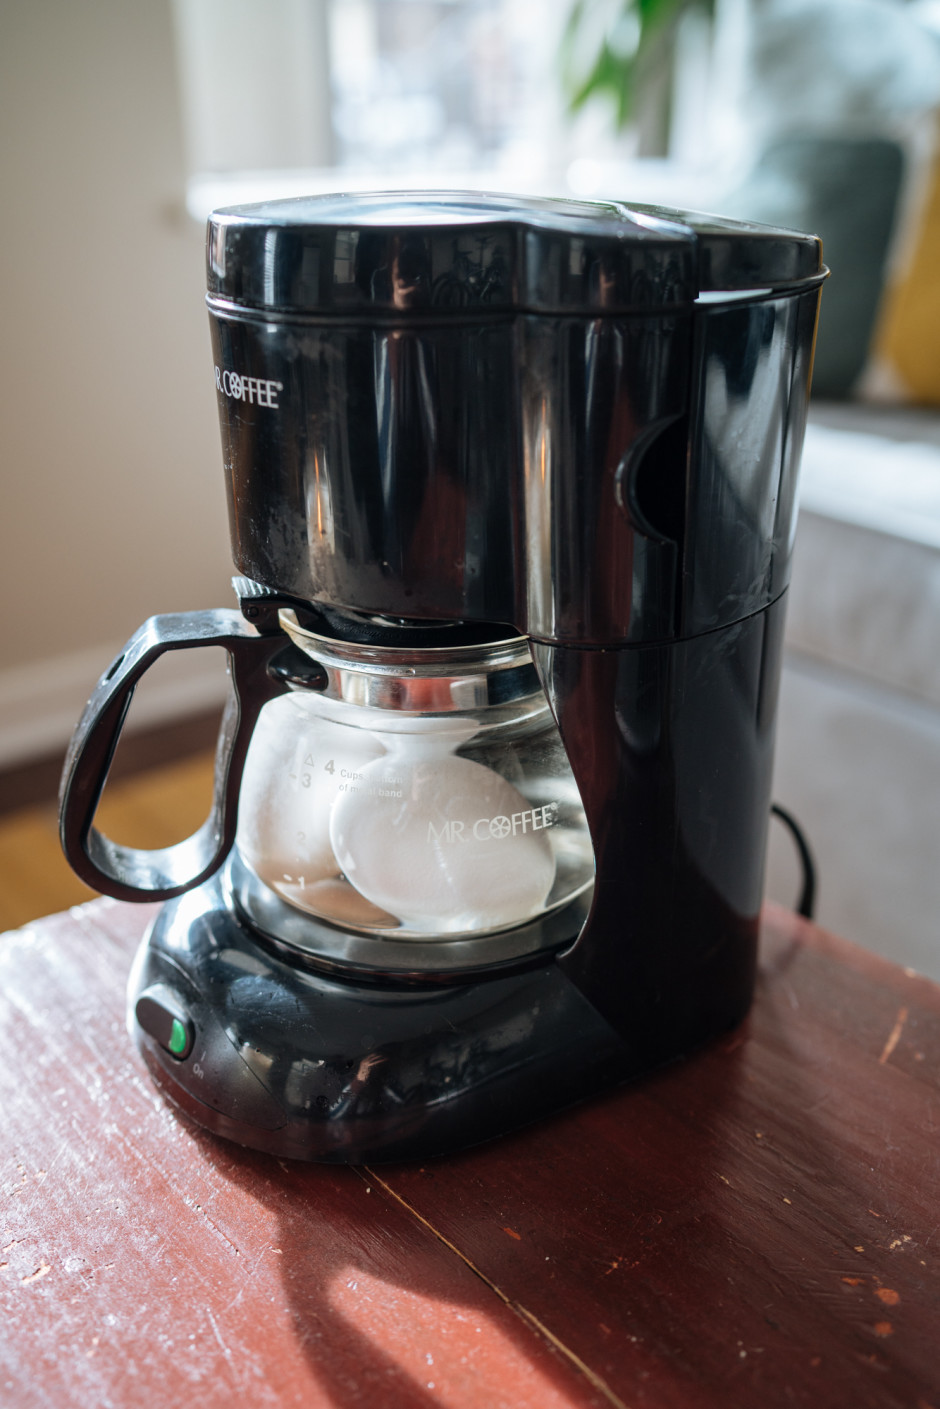 Coffee Maker Cooking Hacks : 14 Foods to Cook Using Only Your Coffee Maker